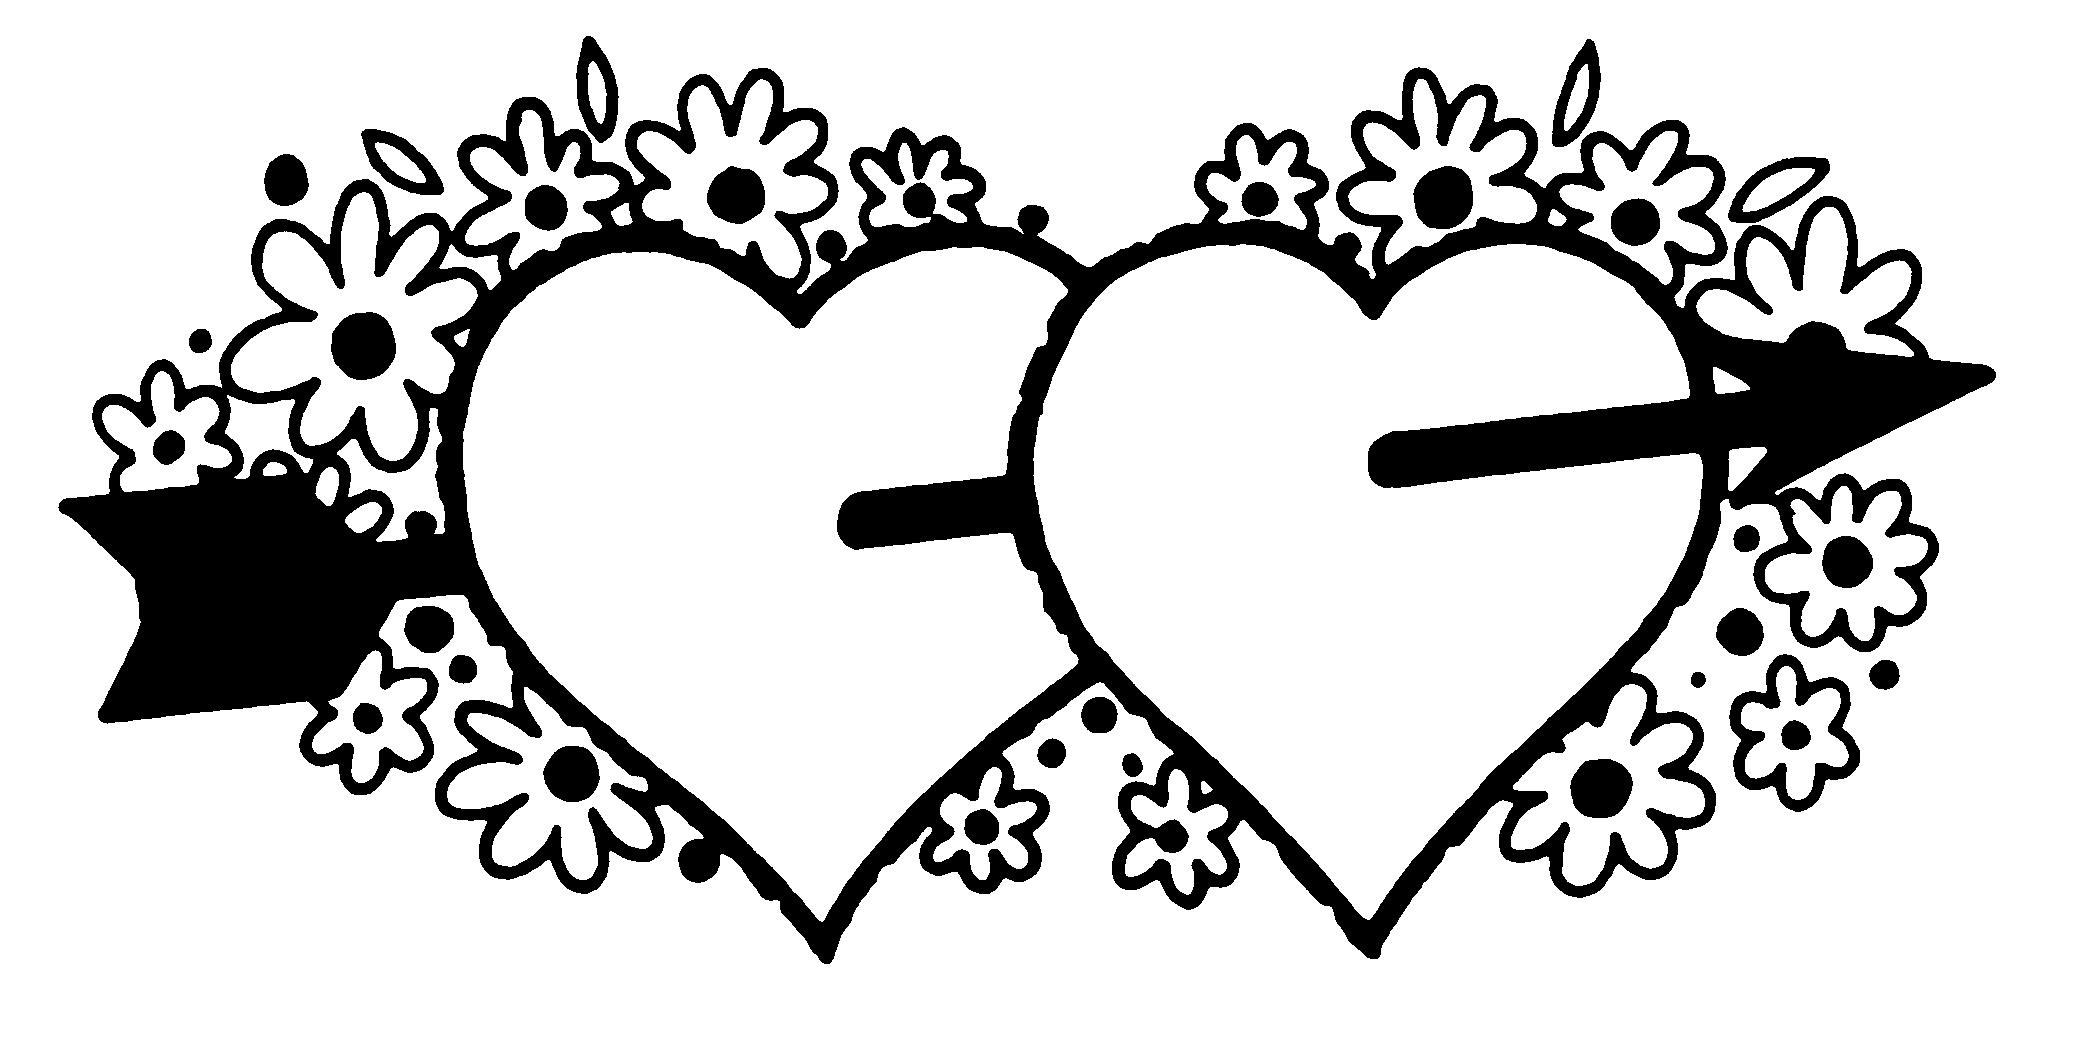 Marriage clipart black and white 4 » Clipart Station.